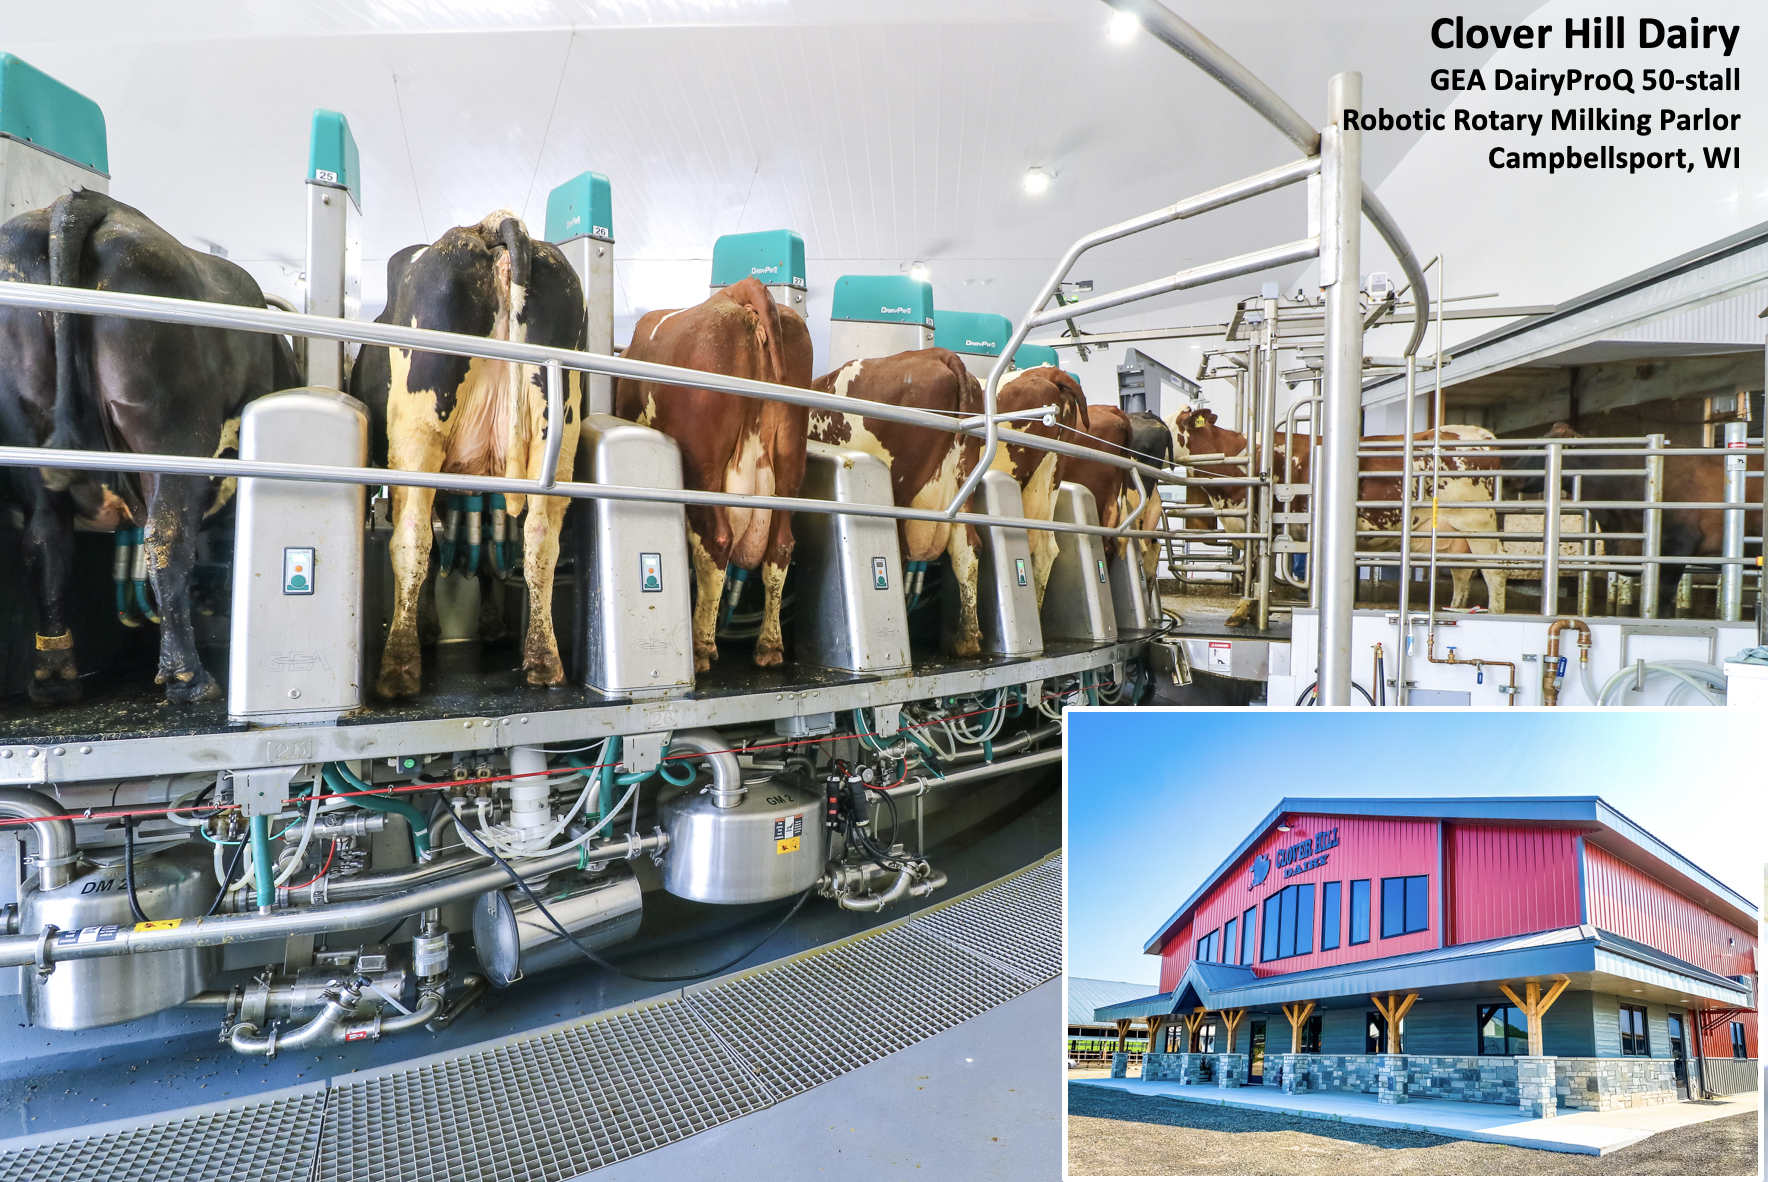 Clover Hill Dairy - Robot Rotary Milking Parlor - GEA